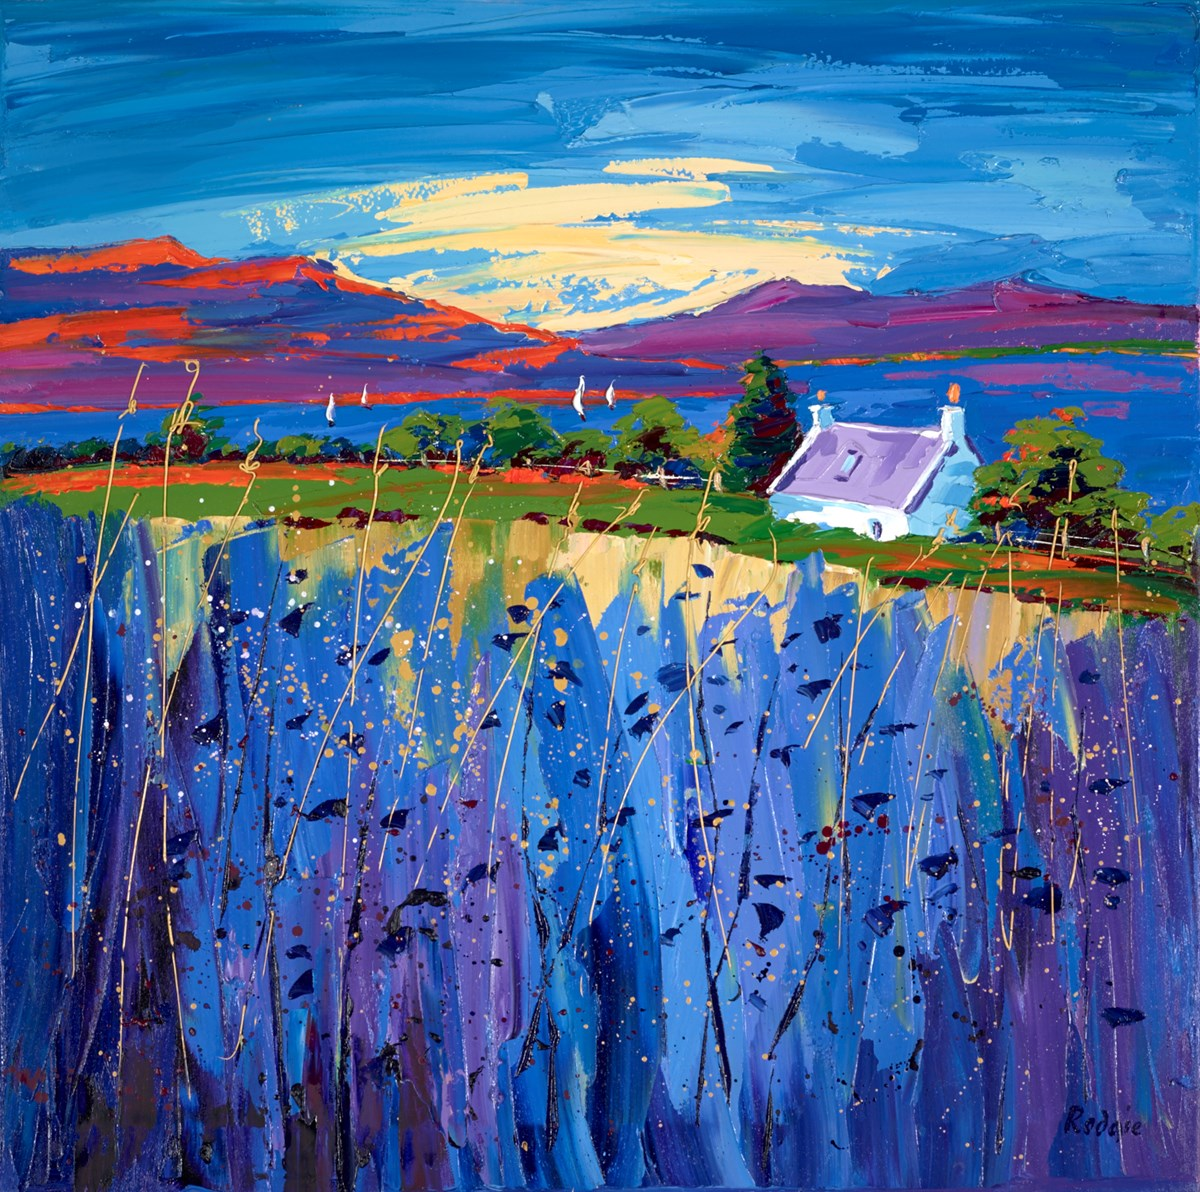 Bluebell Hilltop by lynn rodgie -  sized 27x27 inches. Available from Whitewall Galleries